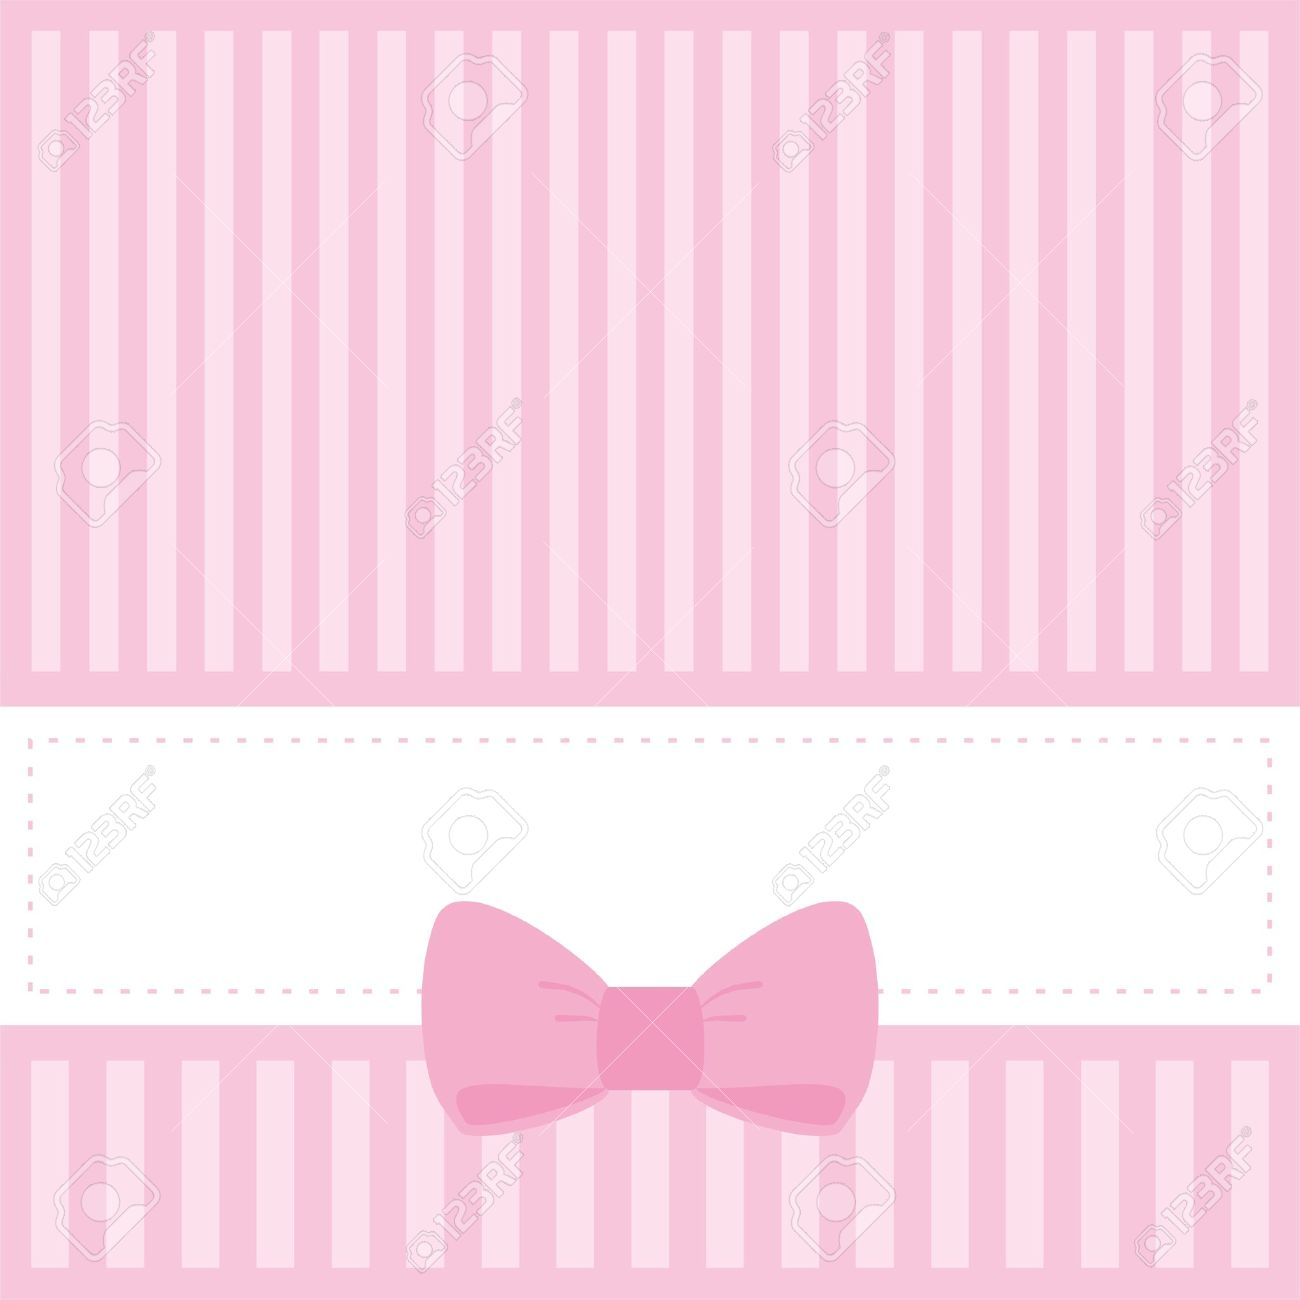 Pink Card Or Invitation For Baby Shower Wedding Birthday Party With Stripes And Sweet